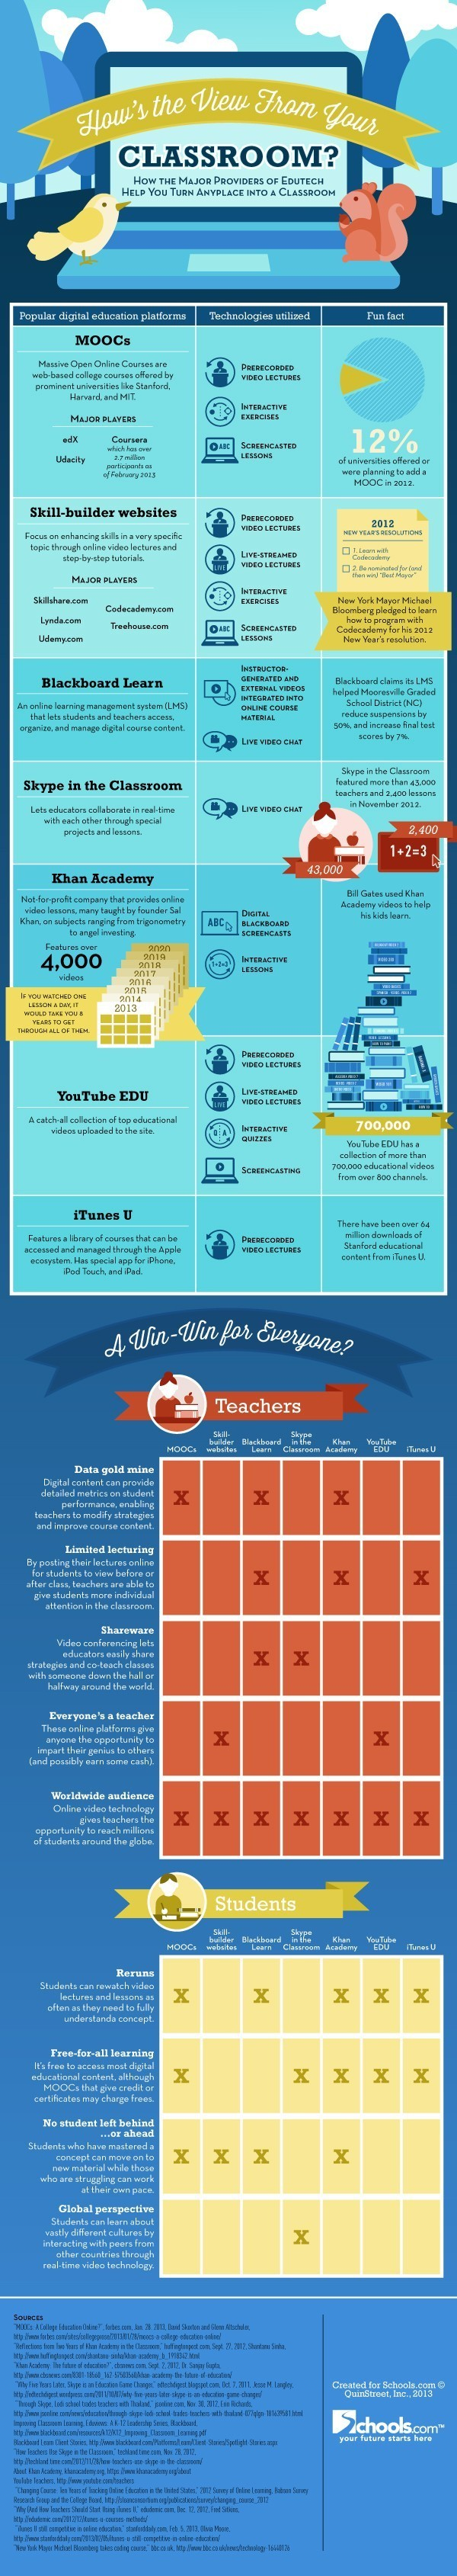 7 Educational Technologies Platforms That Change The Way We Learn Infographic